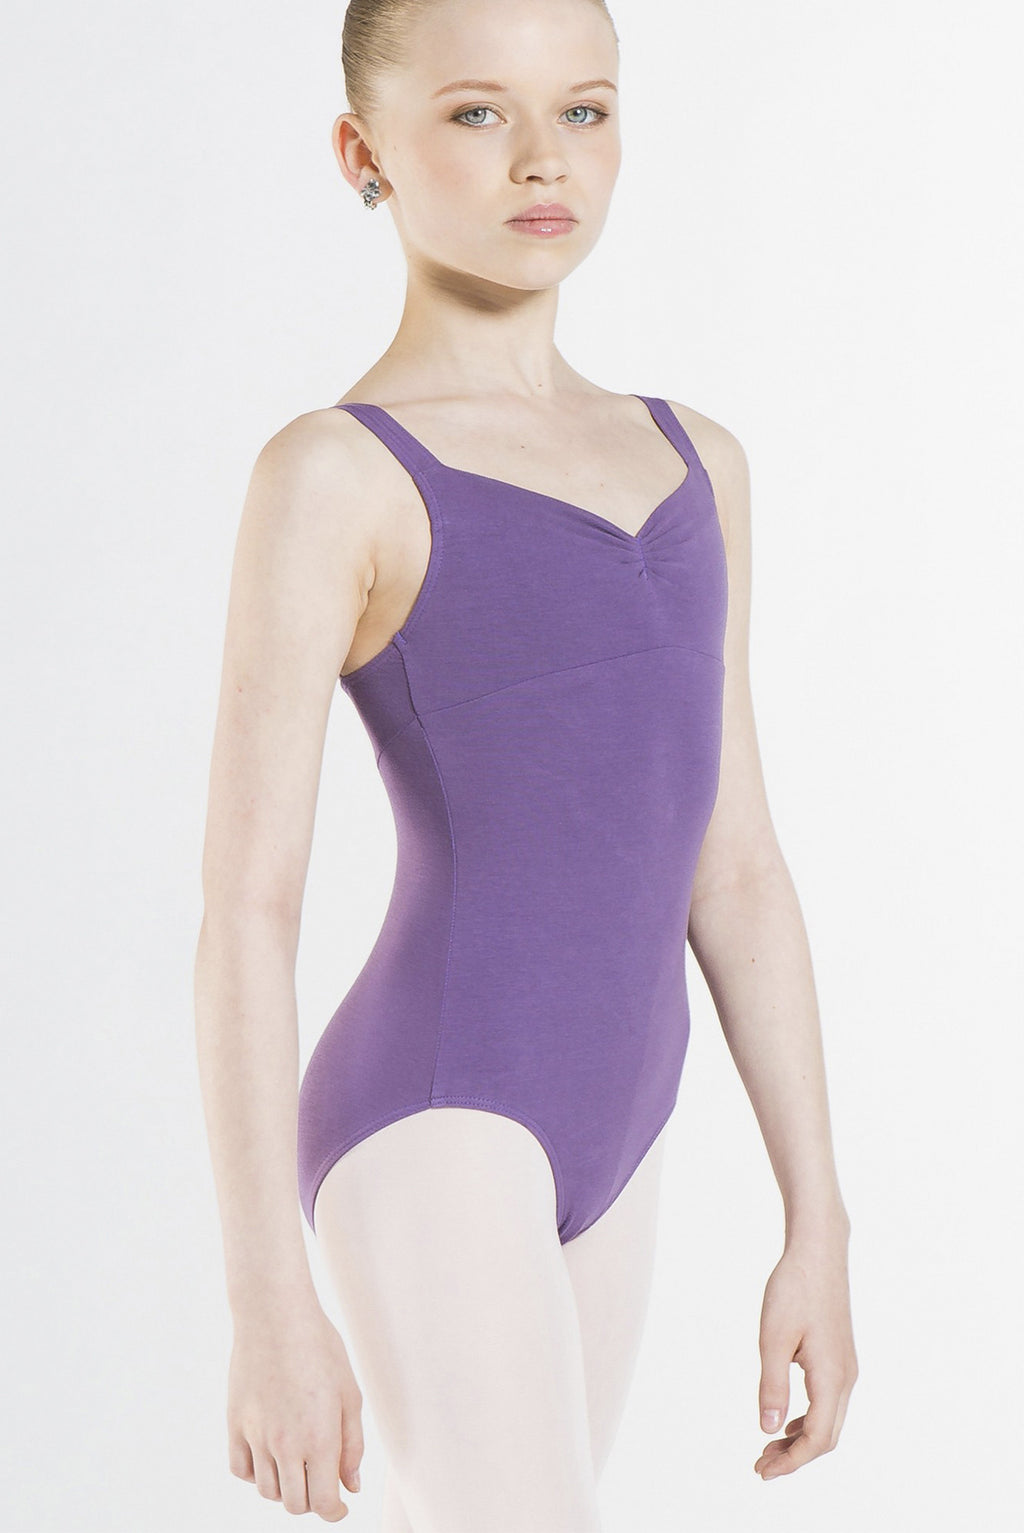 Wear Moi Children's Mabel Tank Leotard